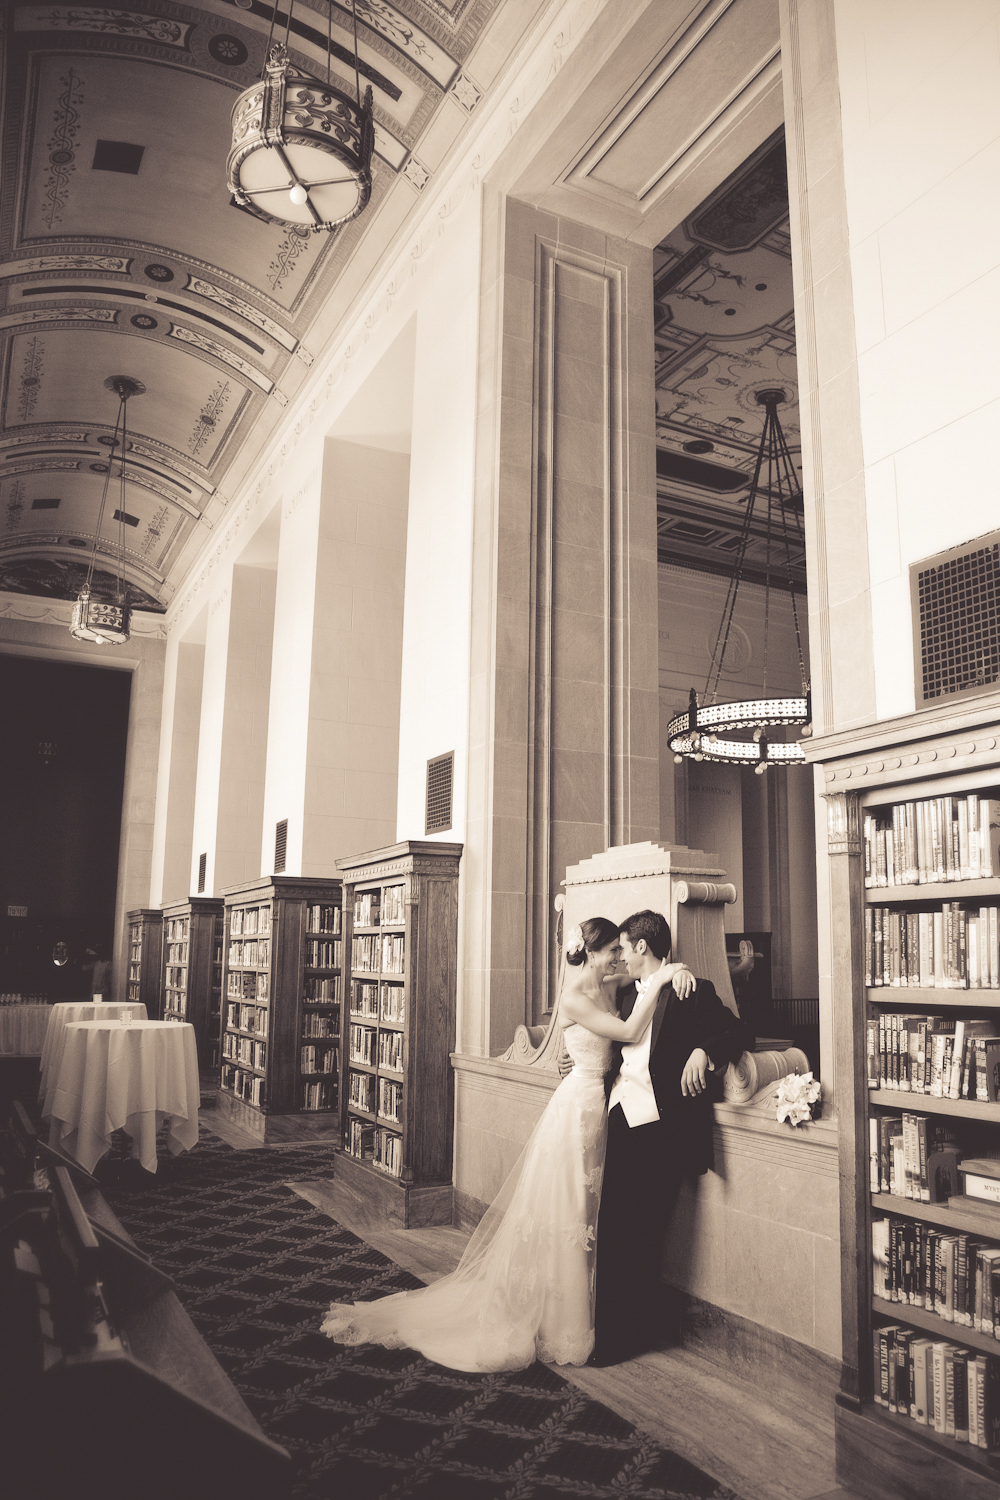 Indianapolis-Indiana-Wedding-Photographer-Crowes-Eye-Photography-Central-Library-Bride-and-Groom.jpg